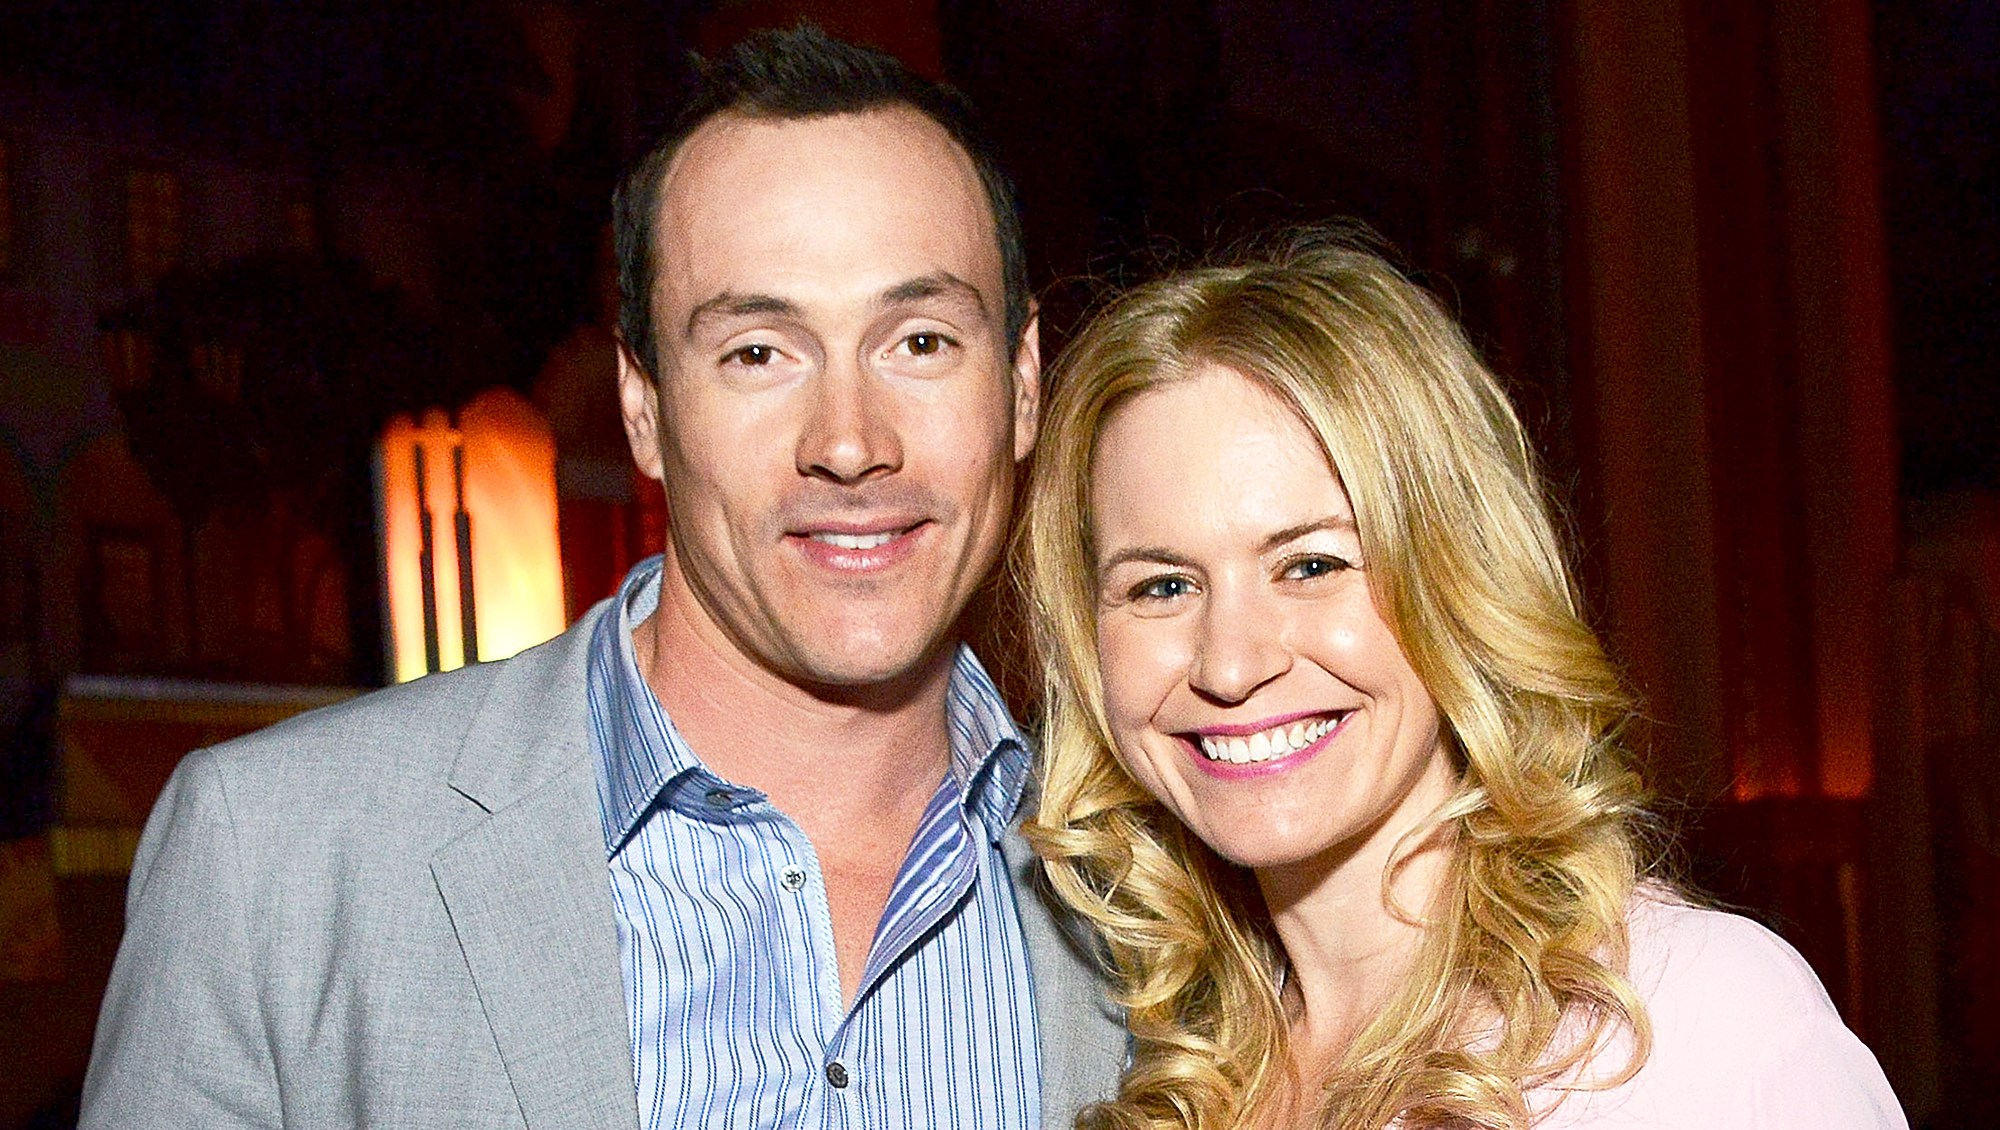 Chris Klein and his wife Laina Rose Thyfault attend the Screen Media Films' 2014 premiere of 'Authors Anonymous' in Westwood, California.